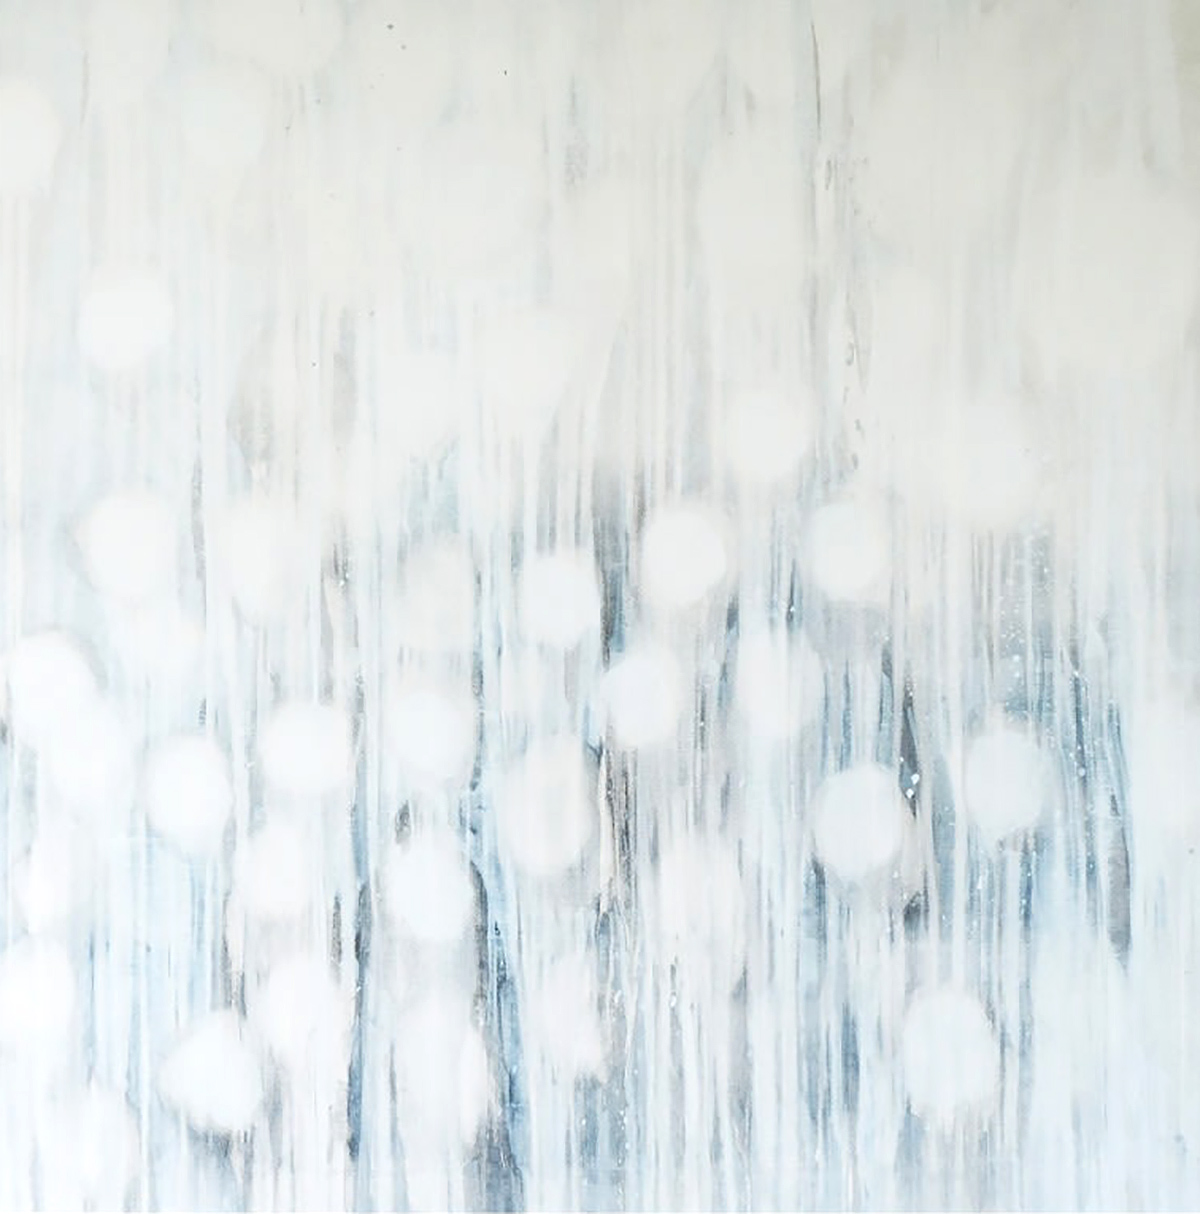 Helen Booth, 'Falling Water', oil on canvas